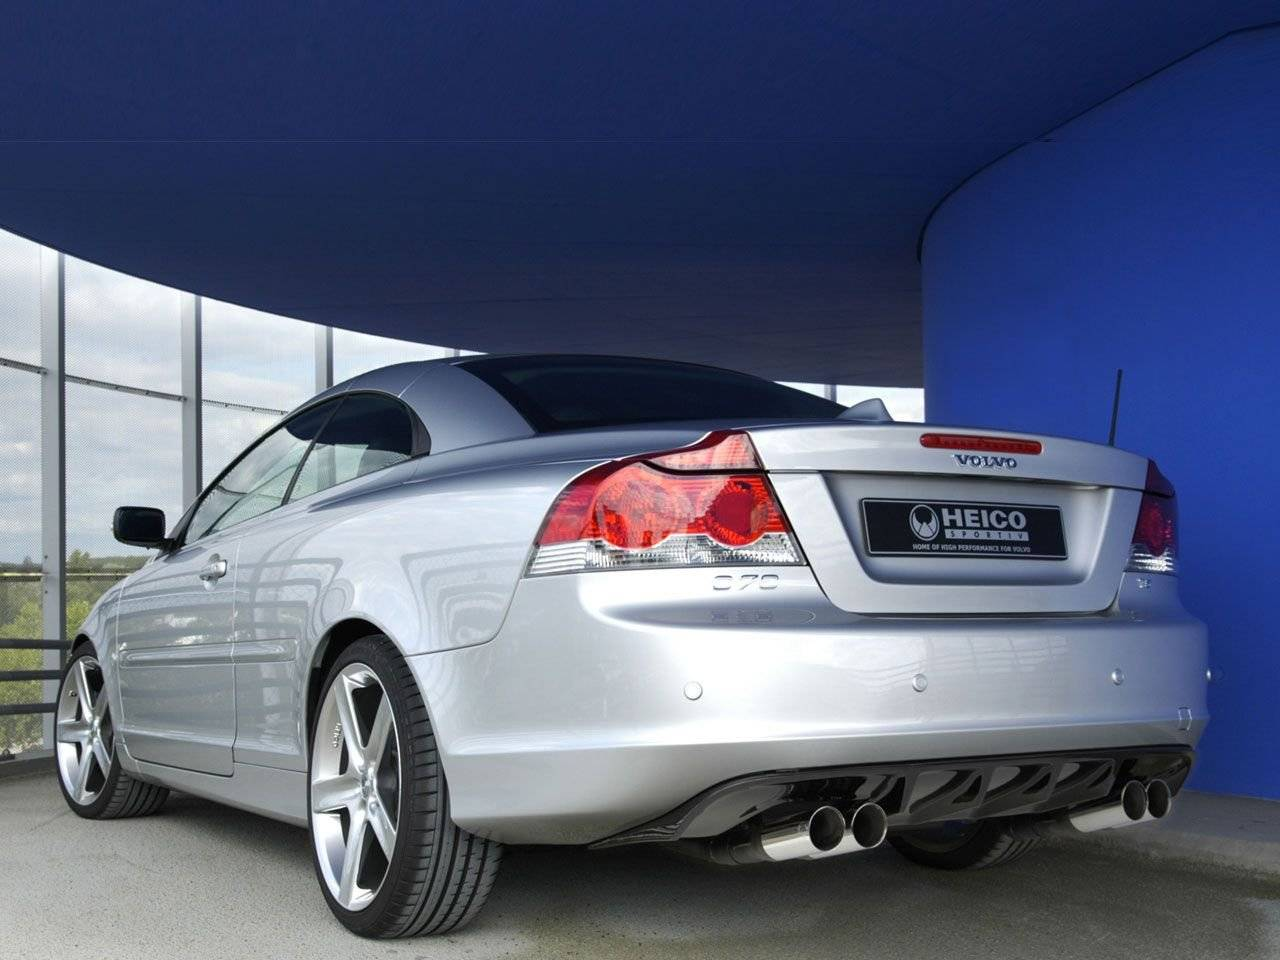 volvo c70 in heico sportiv look tuning styling. Black Bedroom Furniture Sets. Home Design Ideas